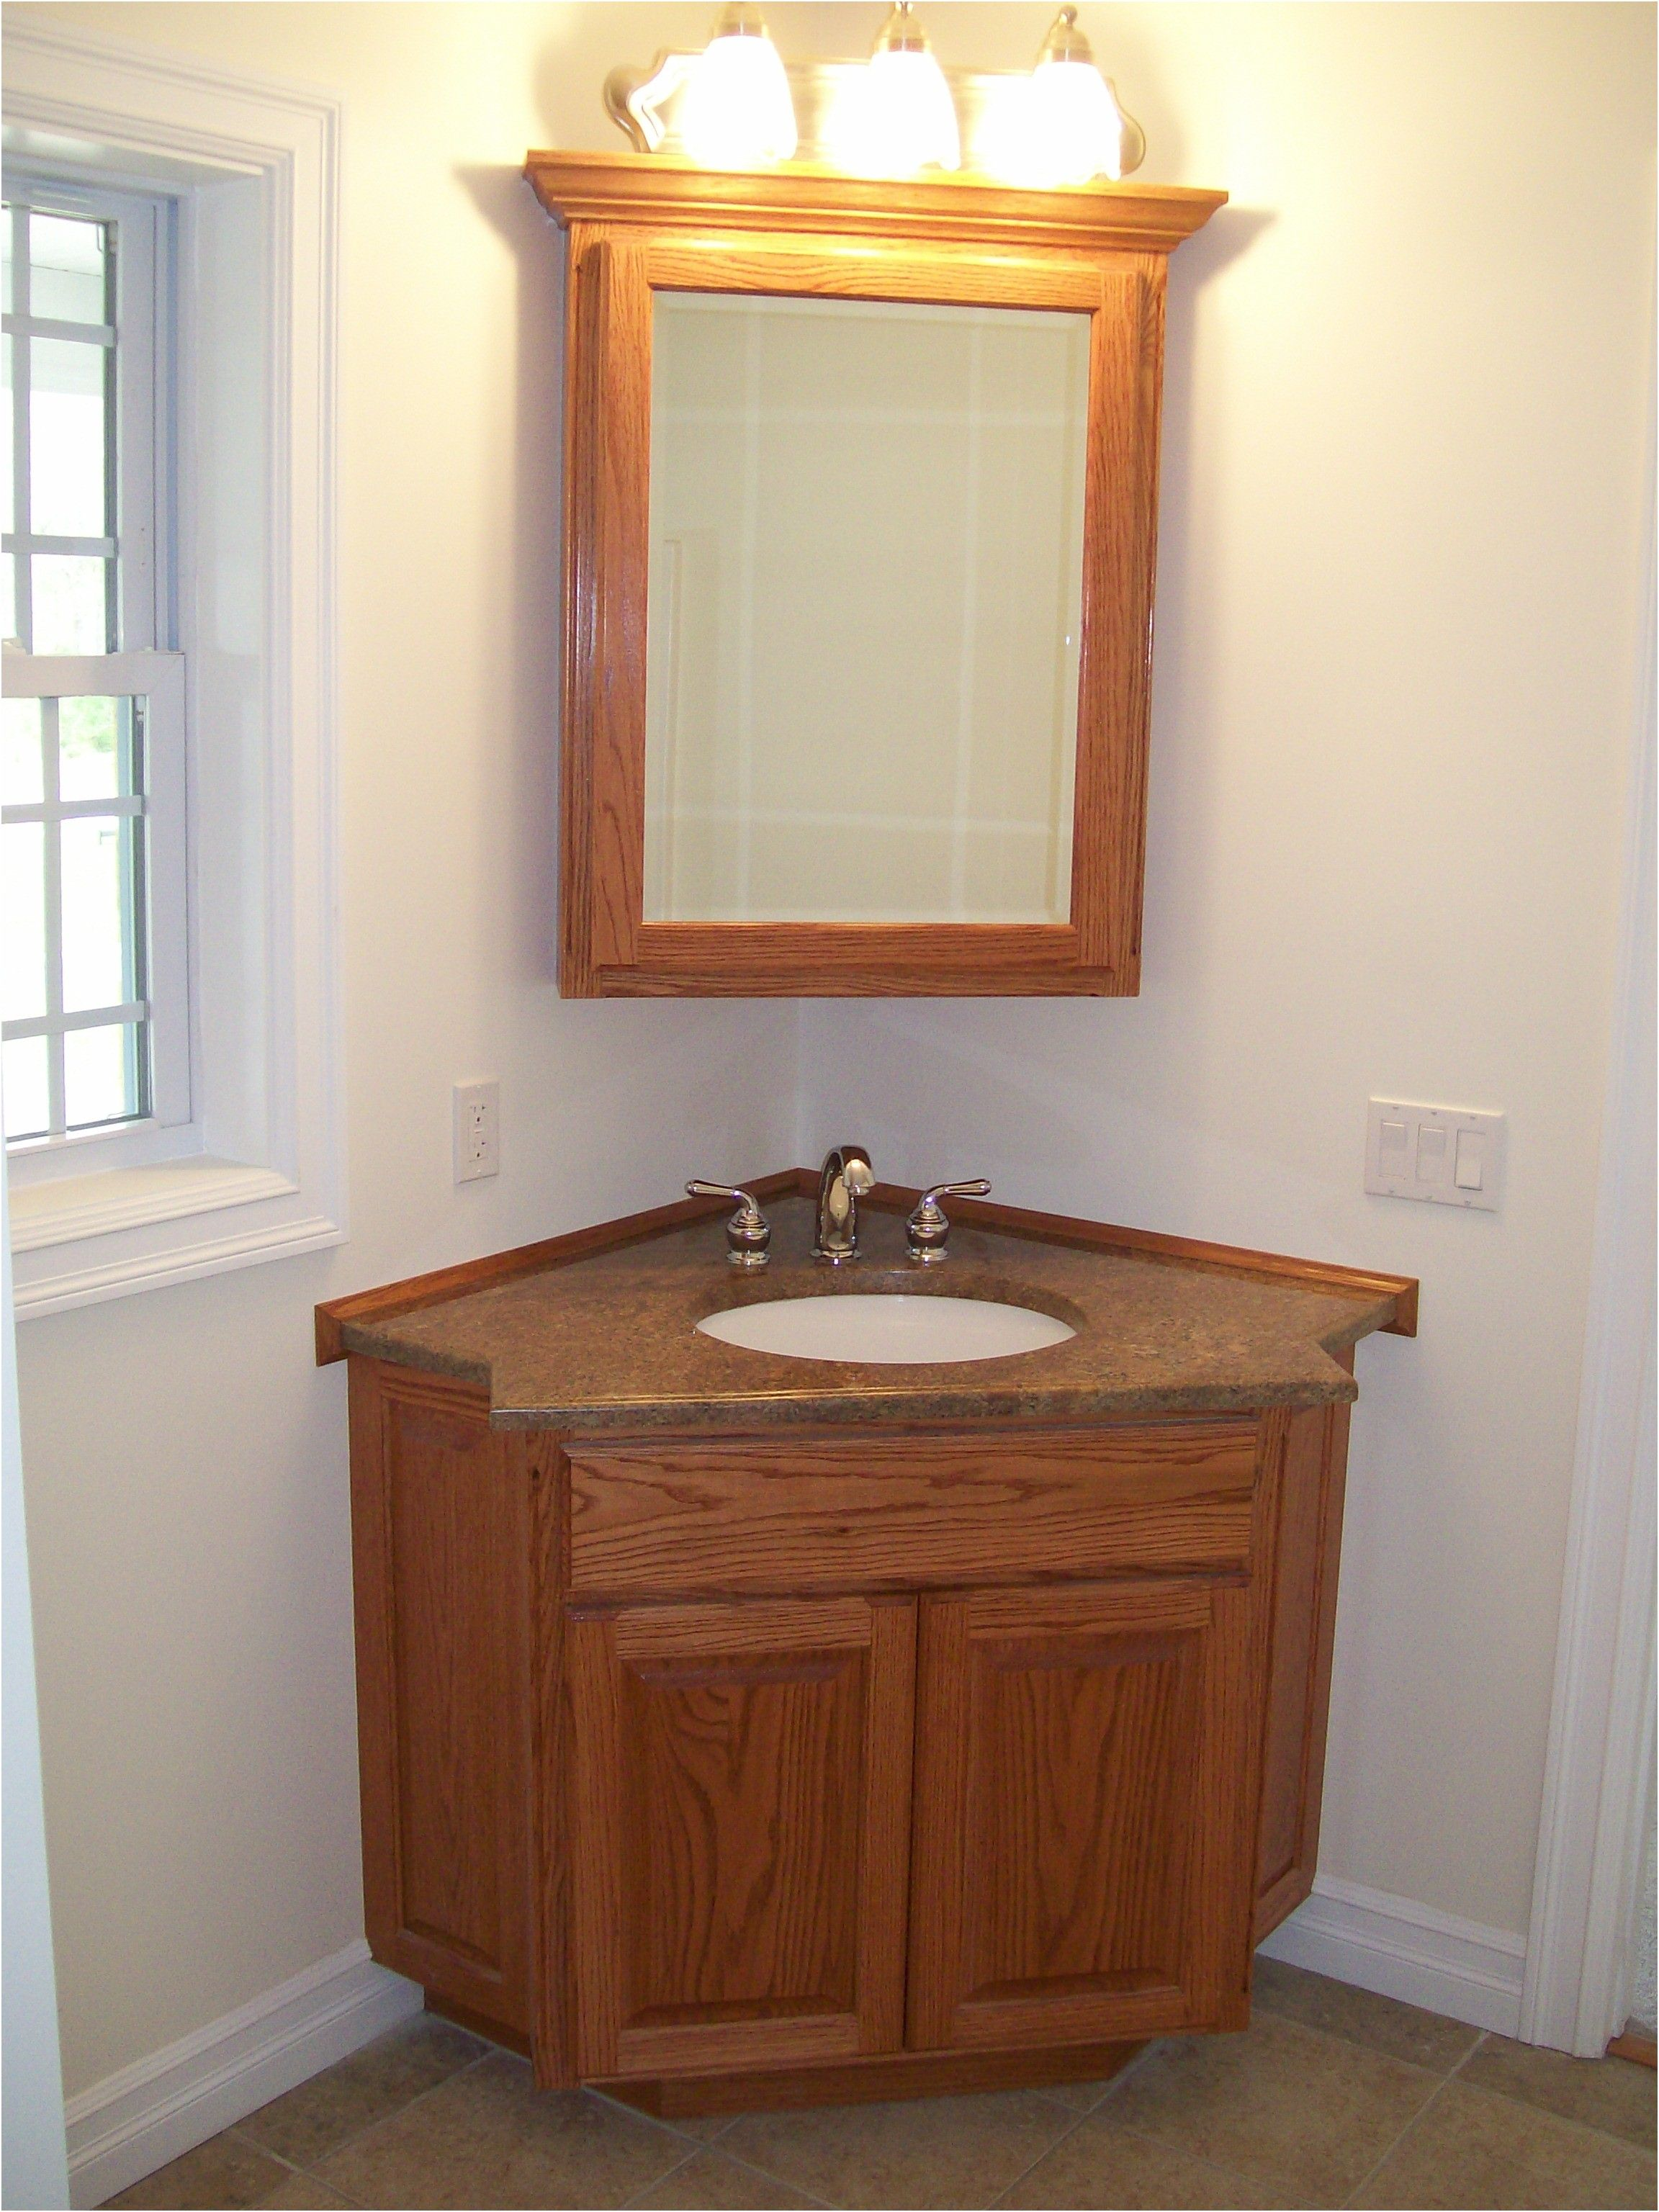 and bathroom unbelievable shocking for without nsyd modern units vanities picture sink design trends best product vanity concept corner